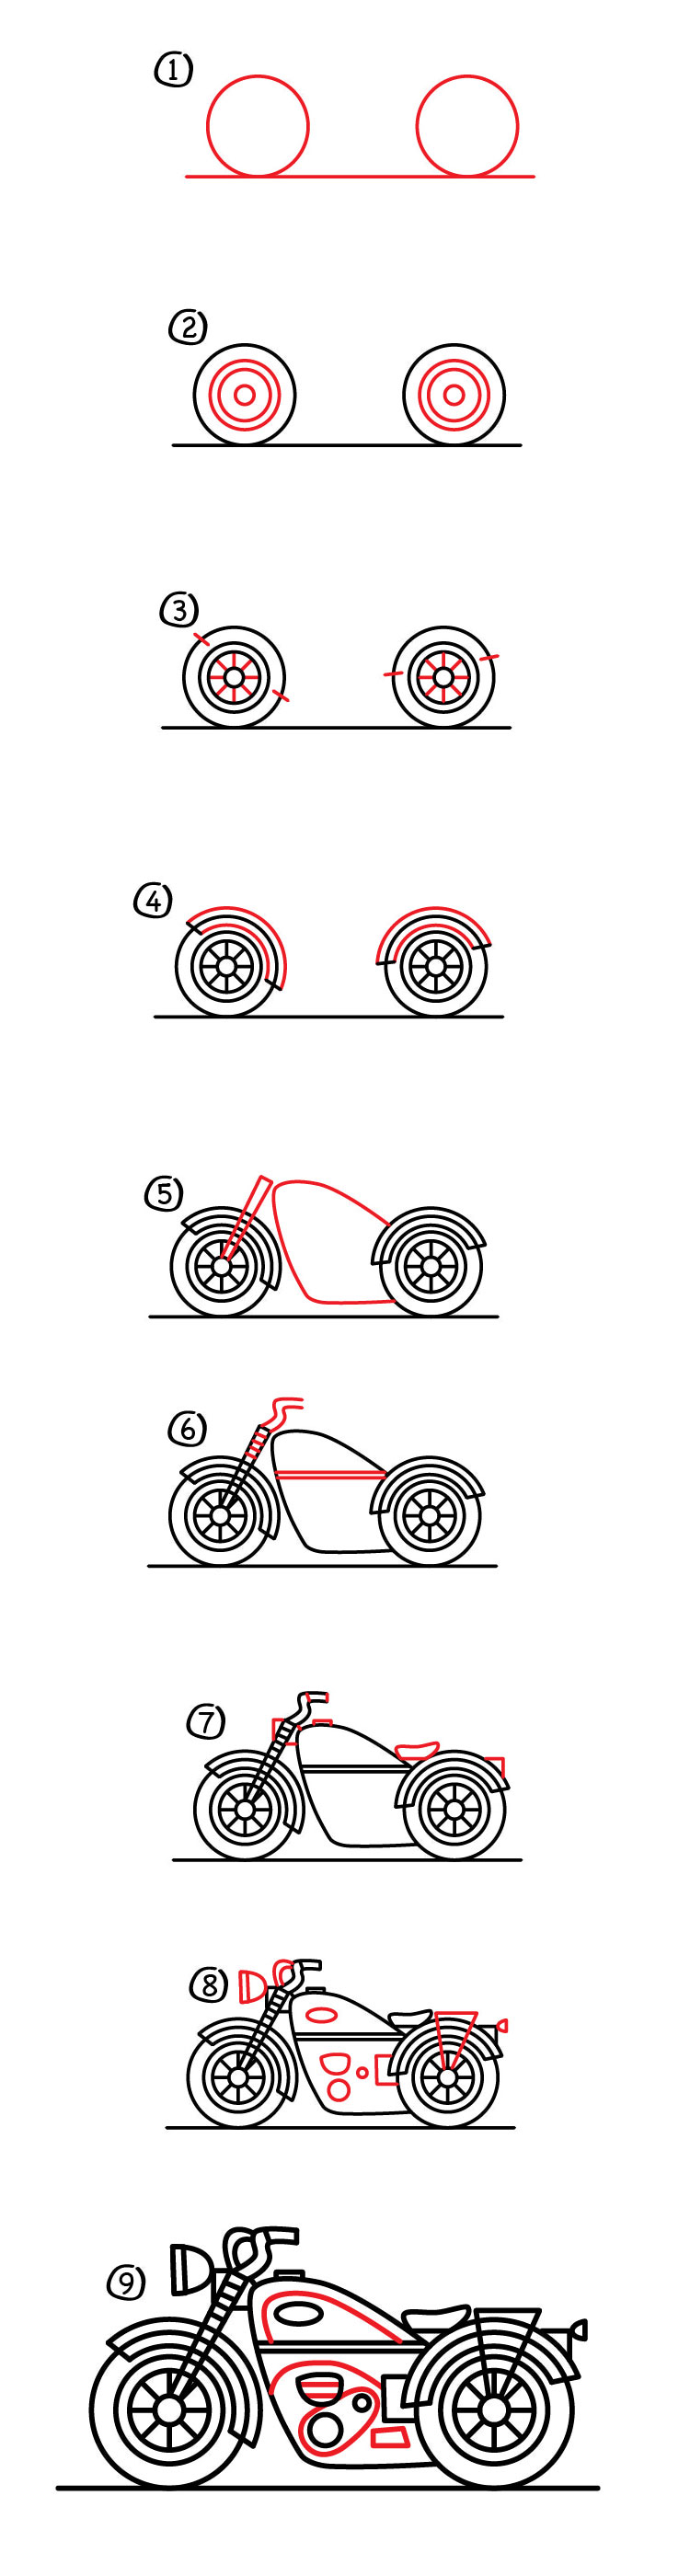 How To Draw A Motorcycle Art For Kids Hub